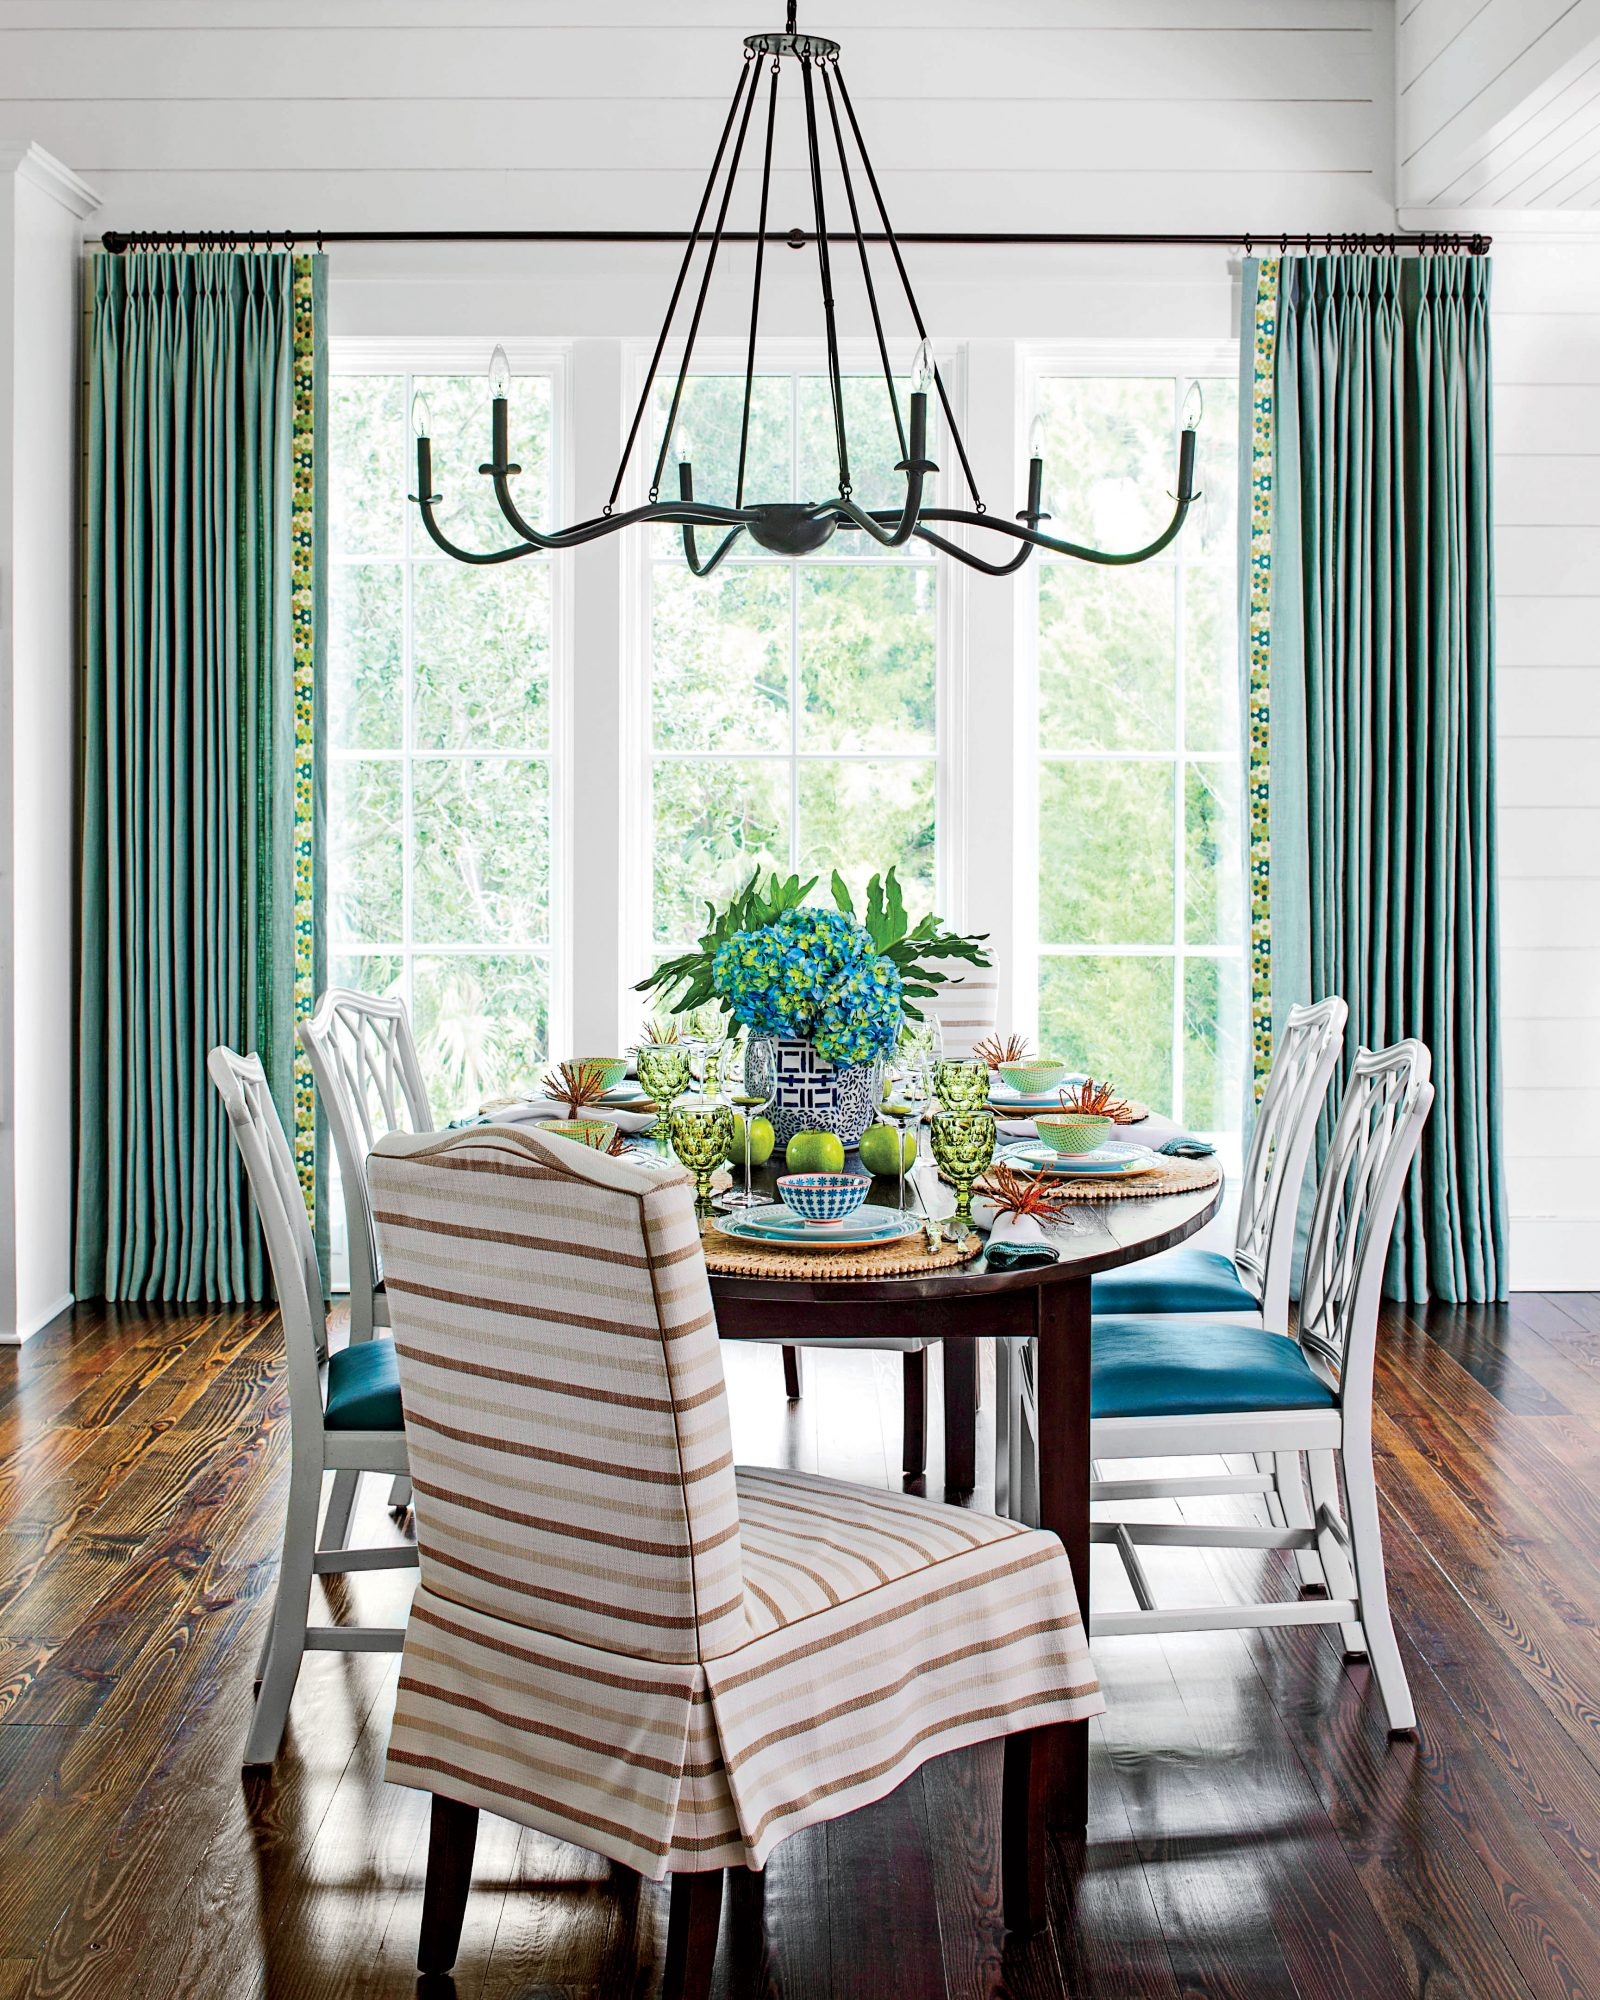 Casual Dining Rooms Decorating Ideas For A Soothing Interior: Stylish Dining Room Decorating Ideas